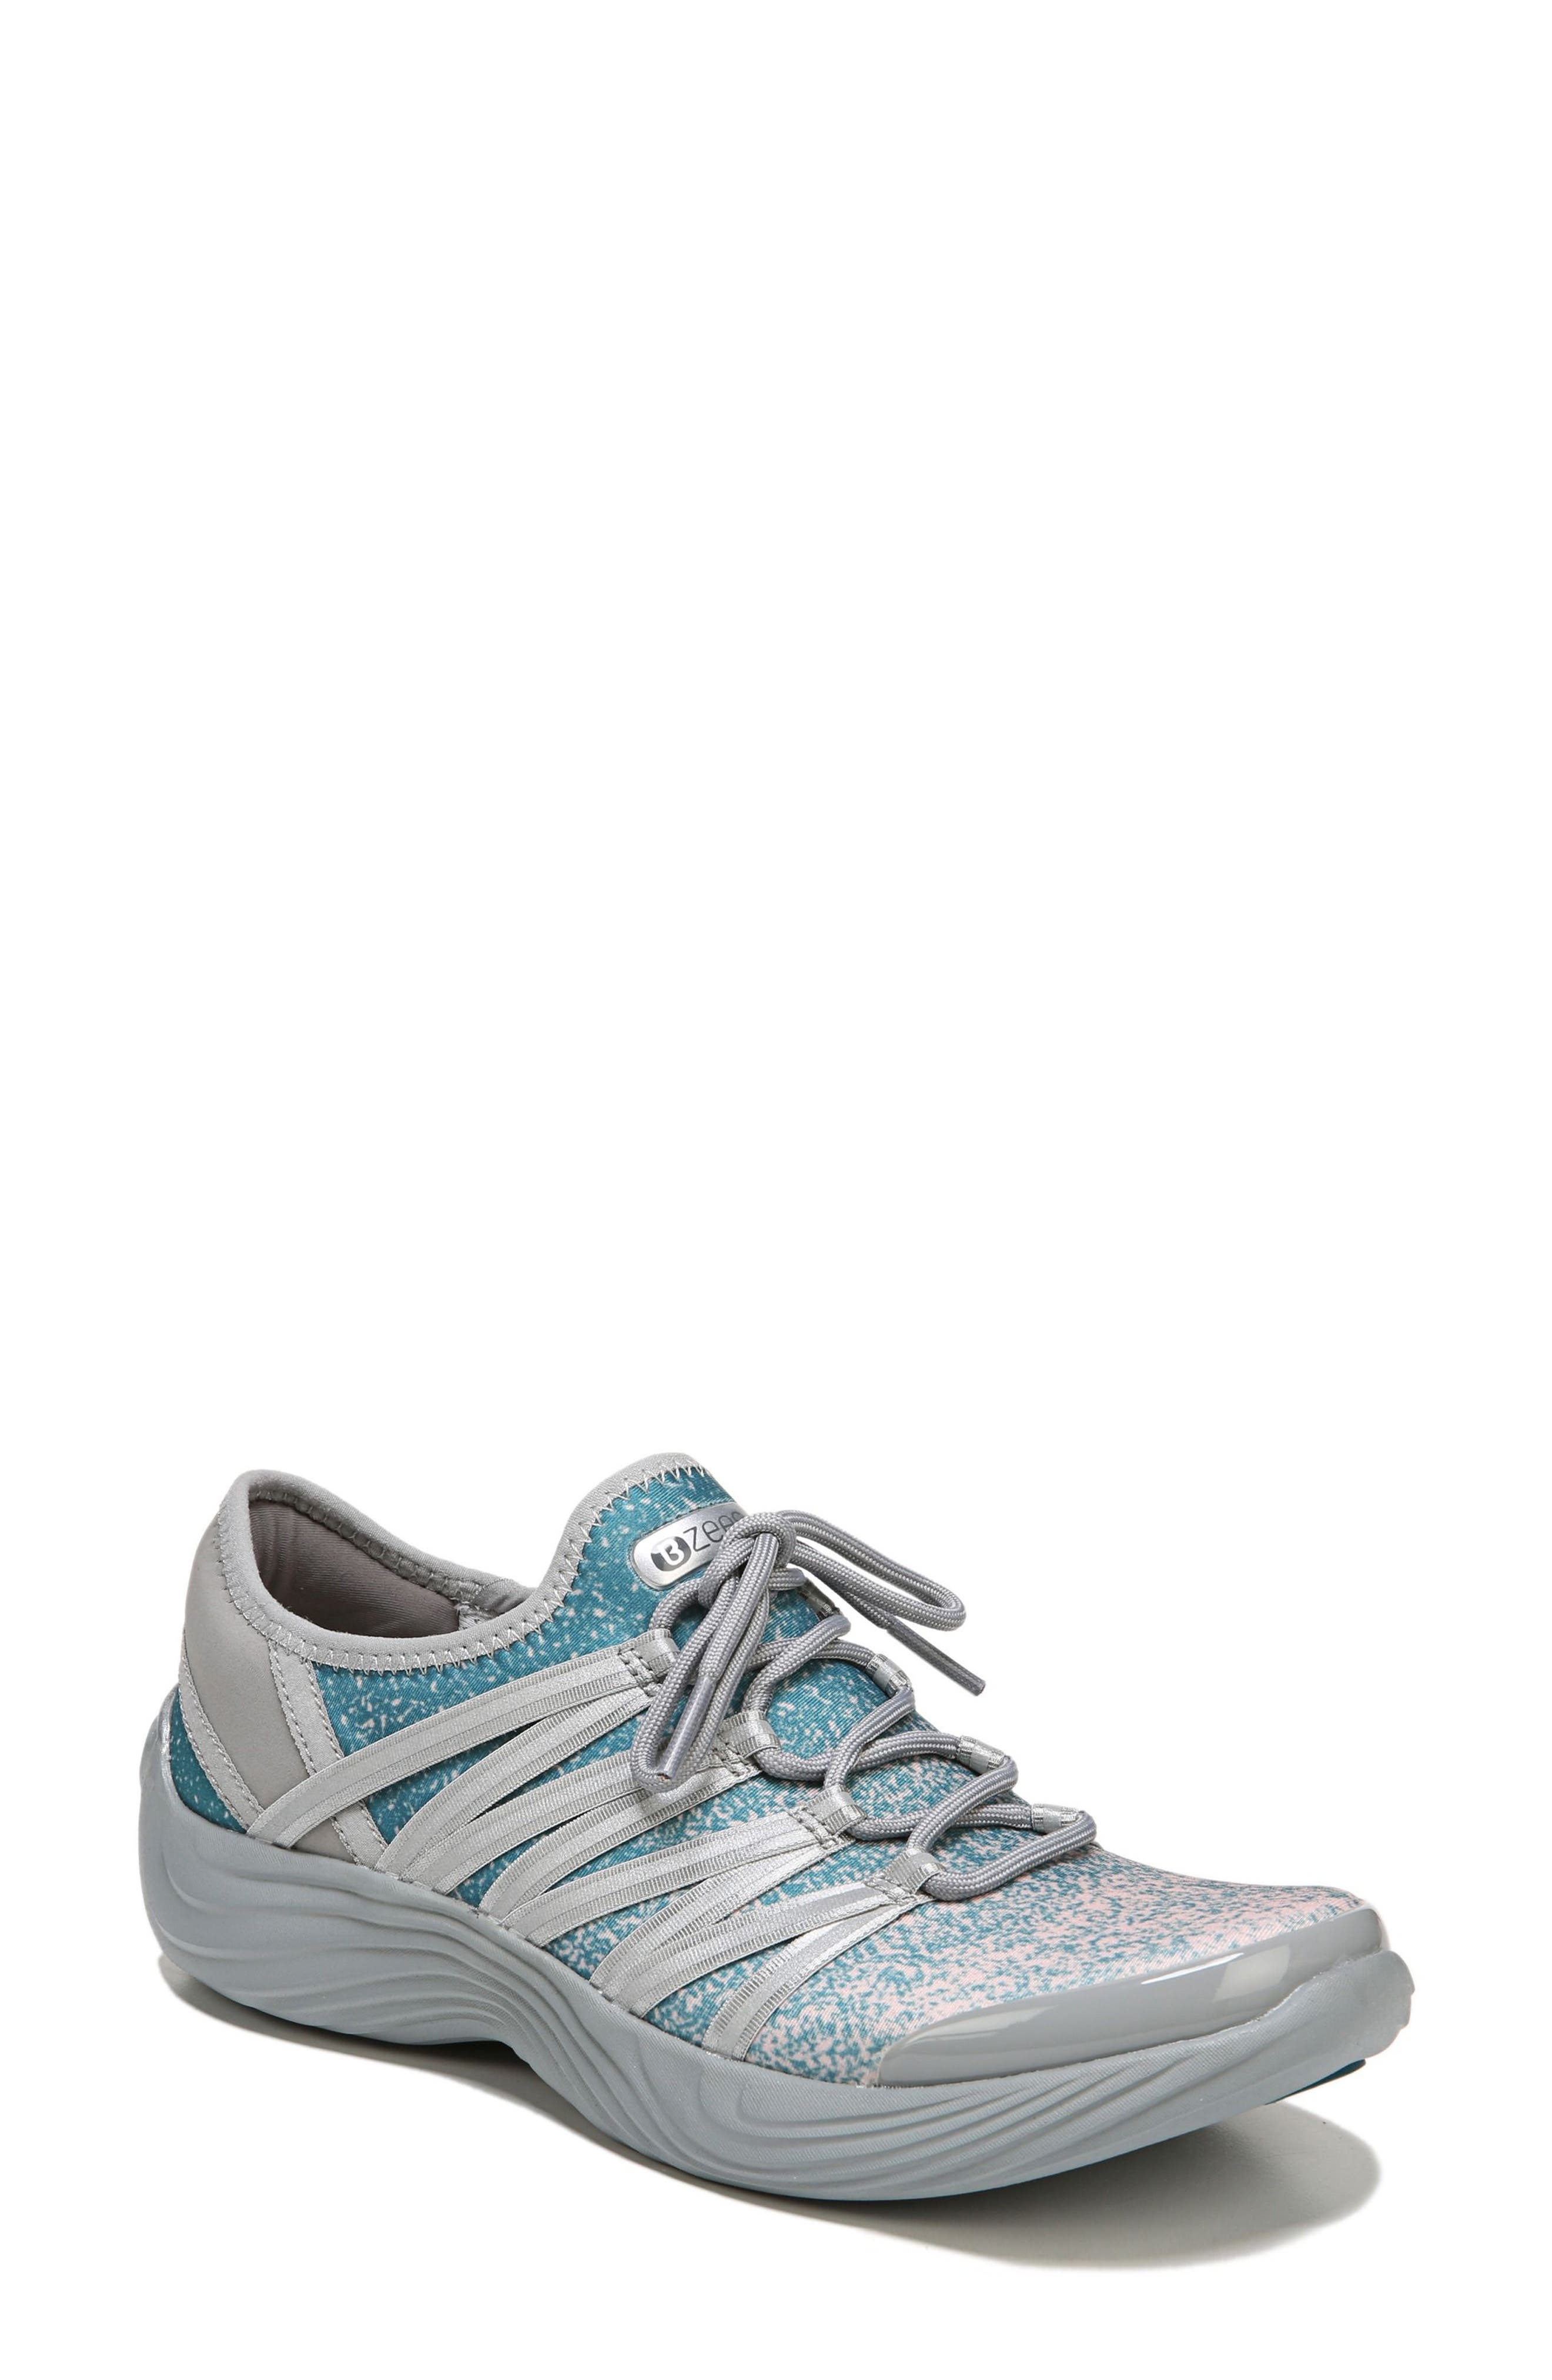 Tender Sneaker,                         Main,                         color,